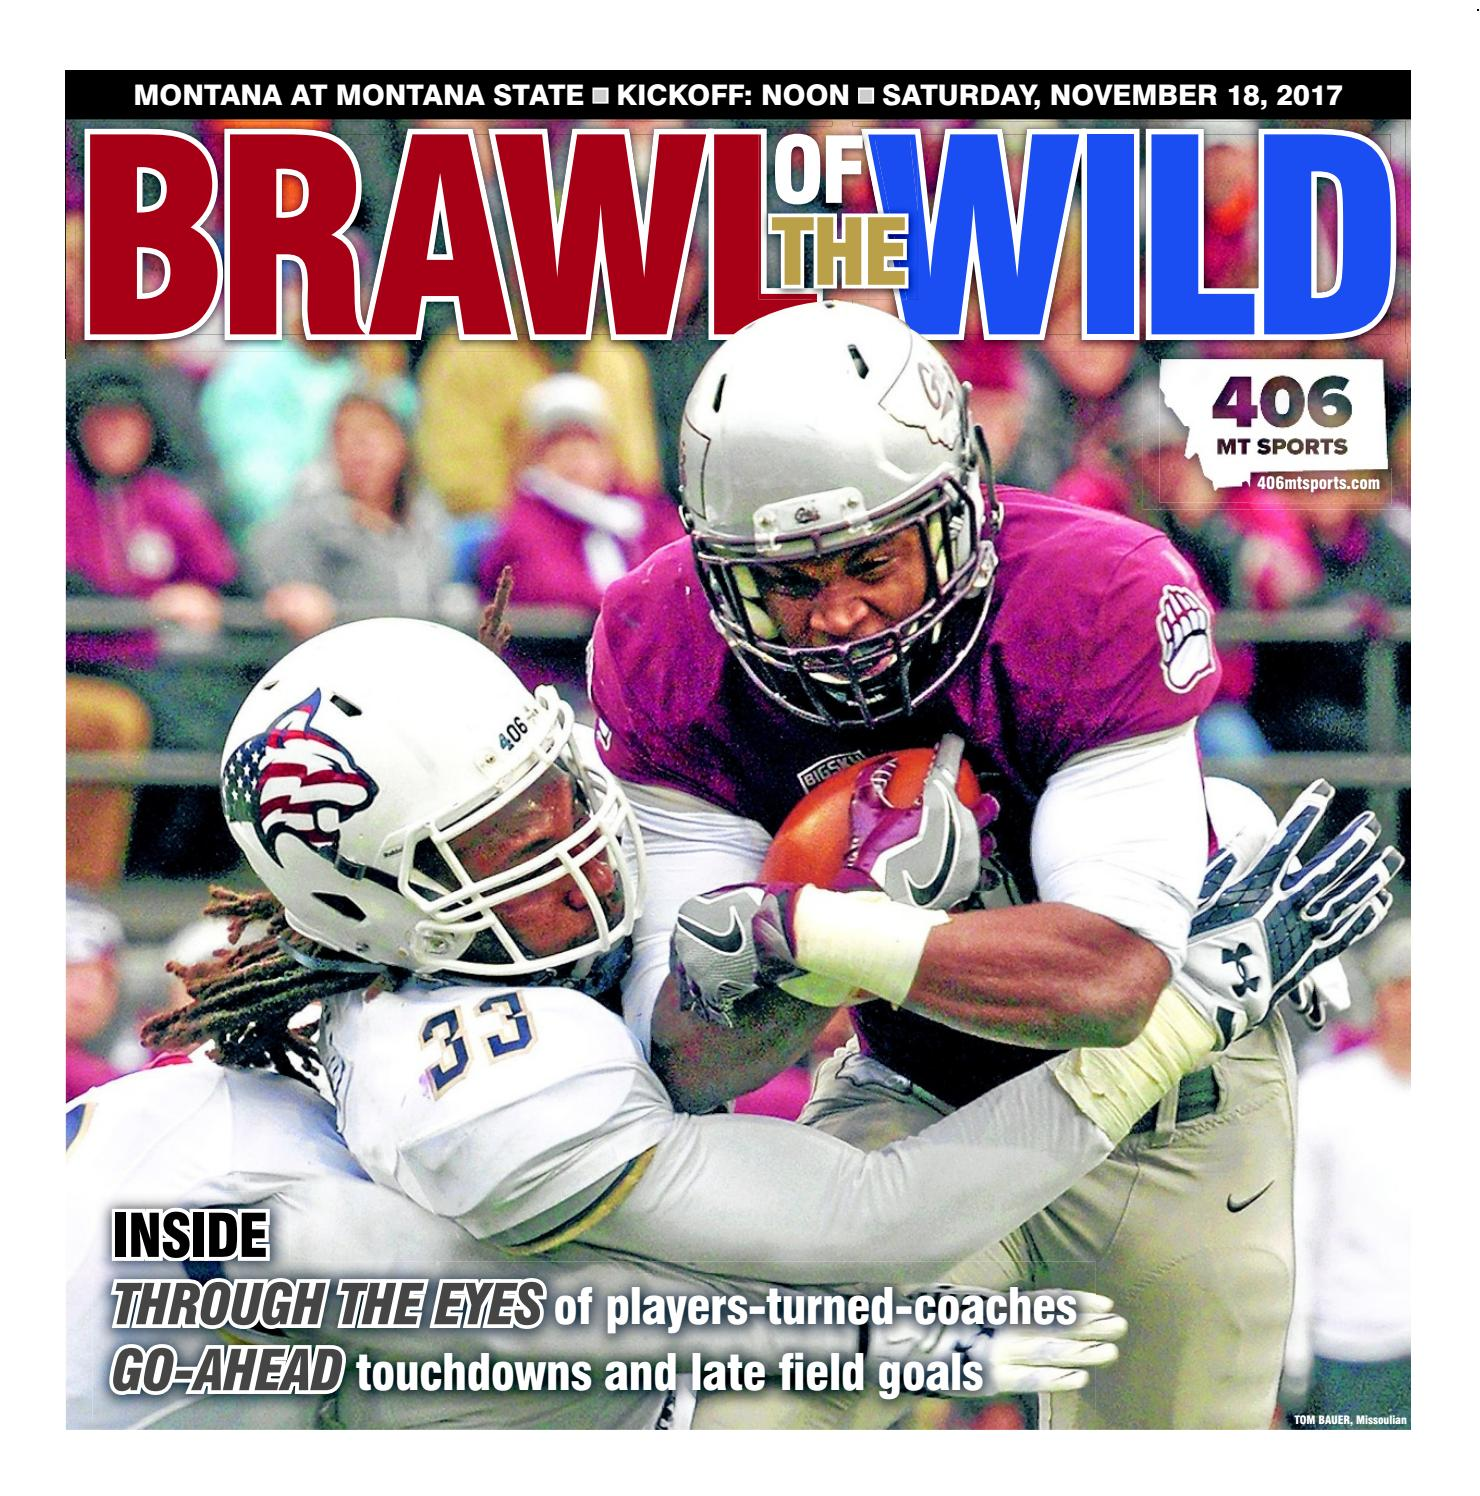 90a24662a Brawl of the Wild 2017 by Billings Gazette - issuu